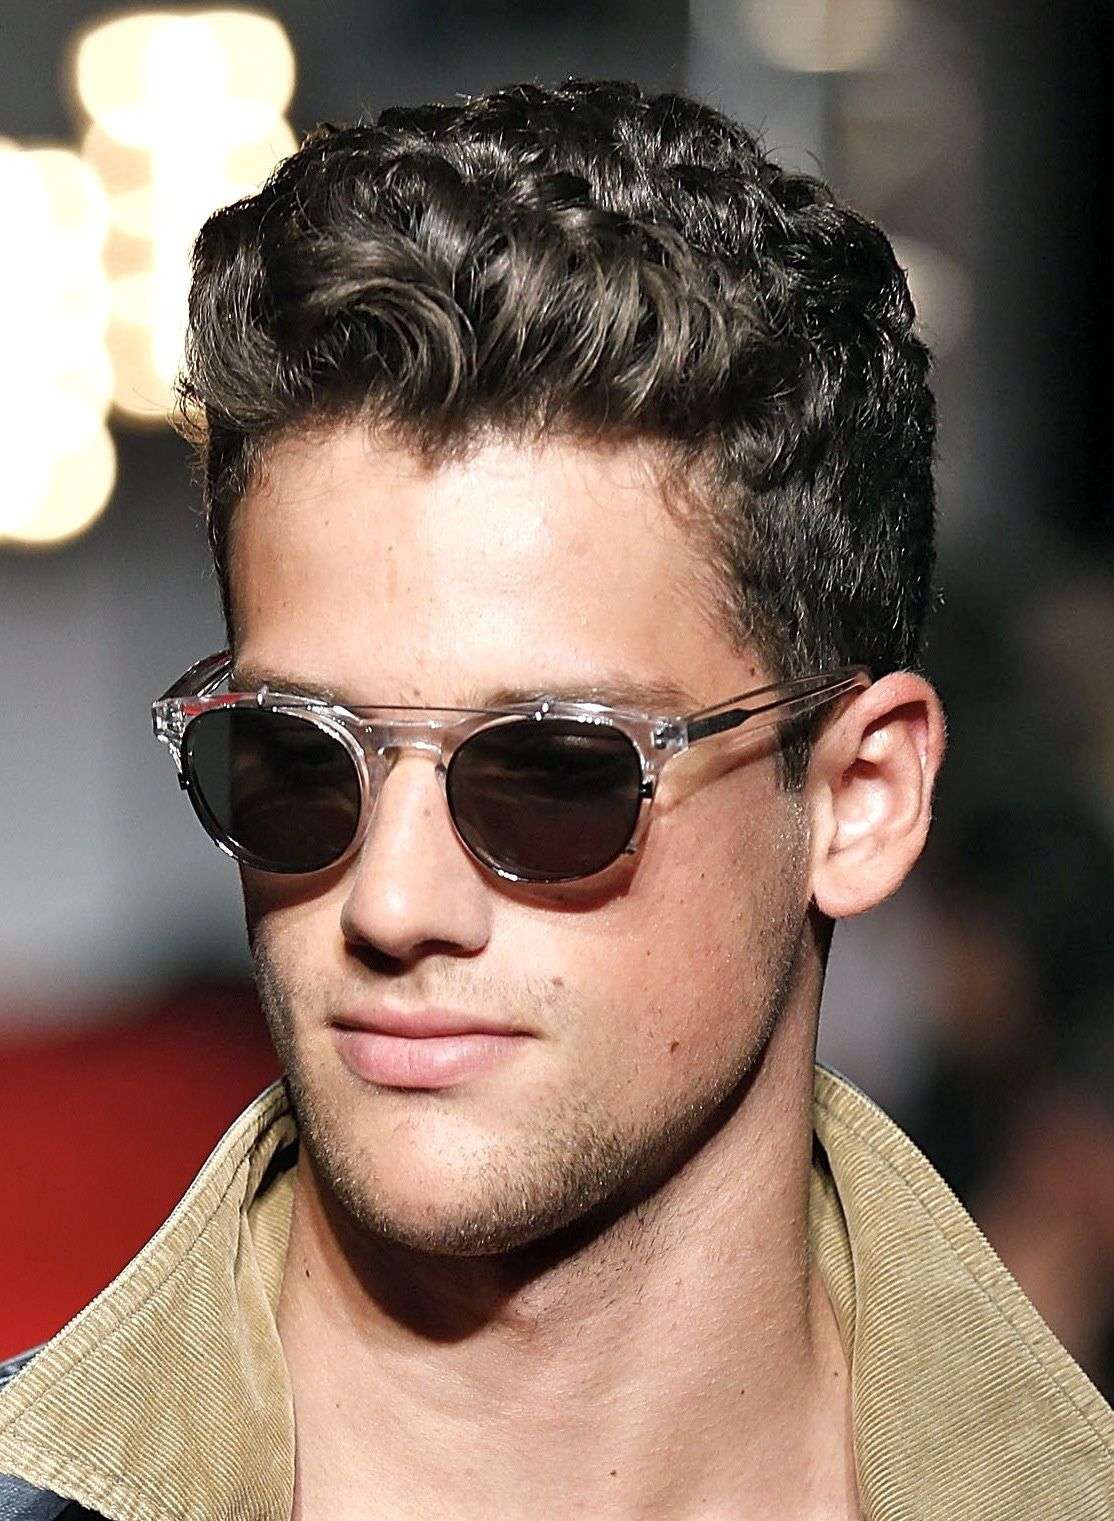 Tremendous 1000 Images About Curly Hairstyles On Pinterest Men Curly Short Hairstyles Gunalazisus